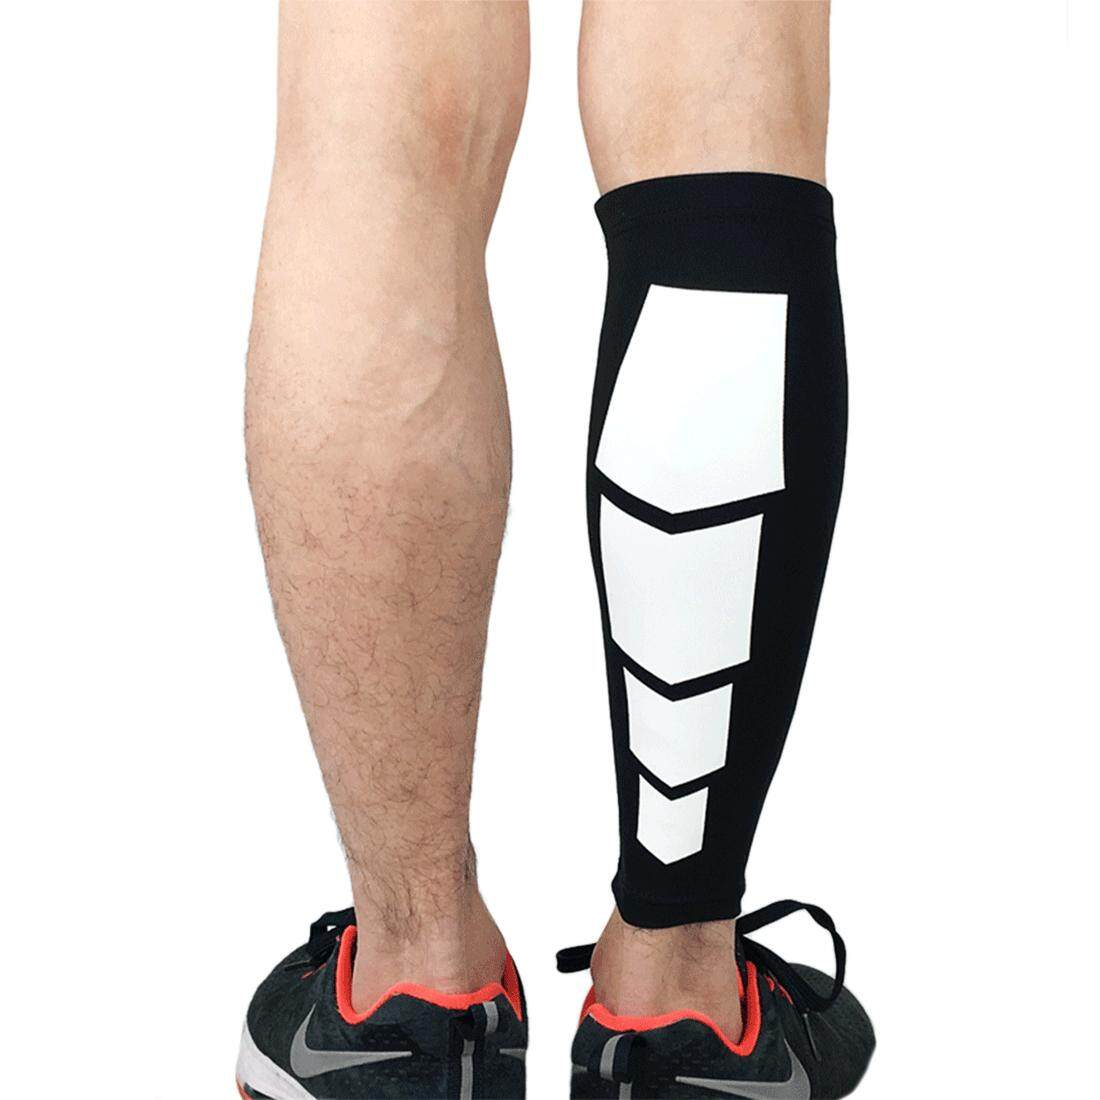 360WISH 1Pc Compressed Elastic Breathable Leg Guard Calf Socks Protector for Outdoor Climbing - Black M